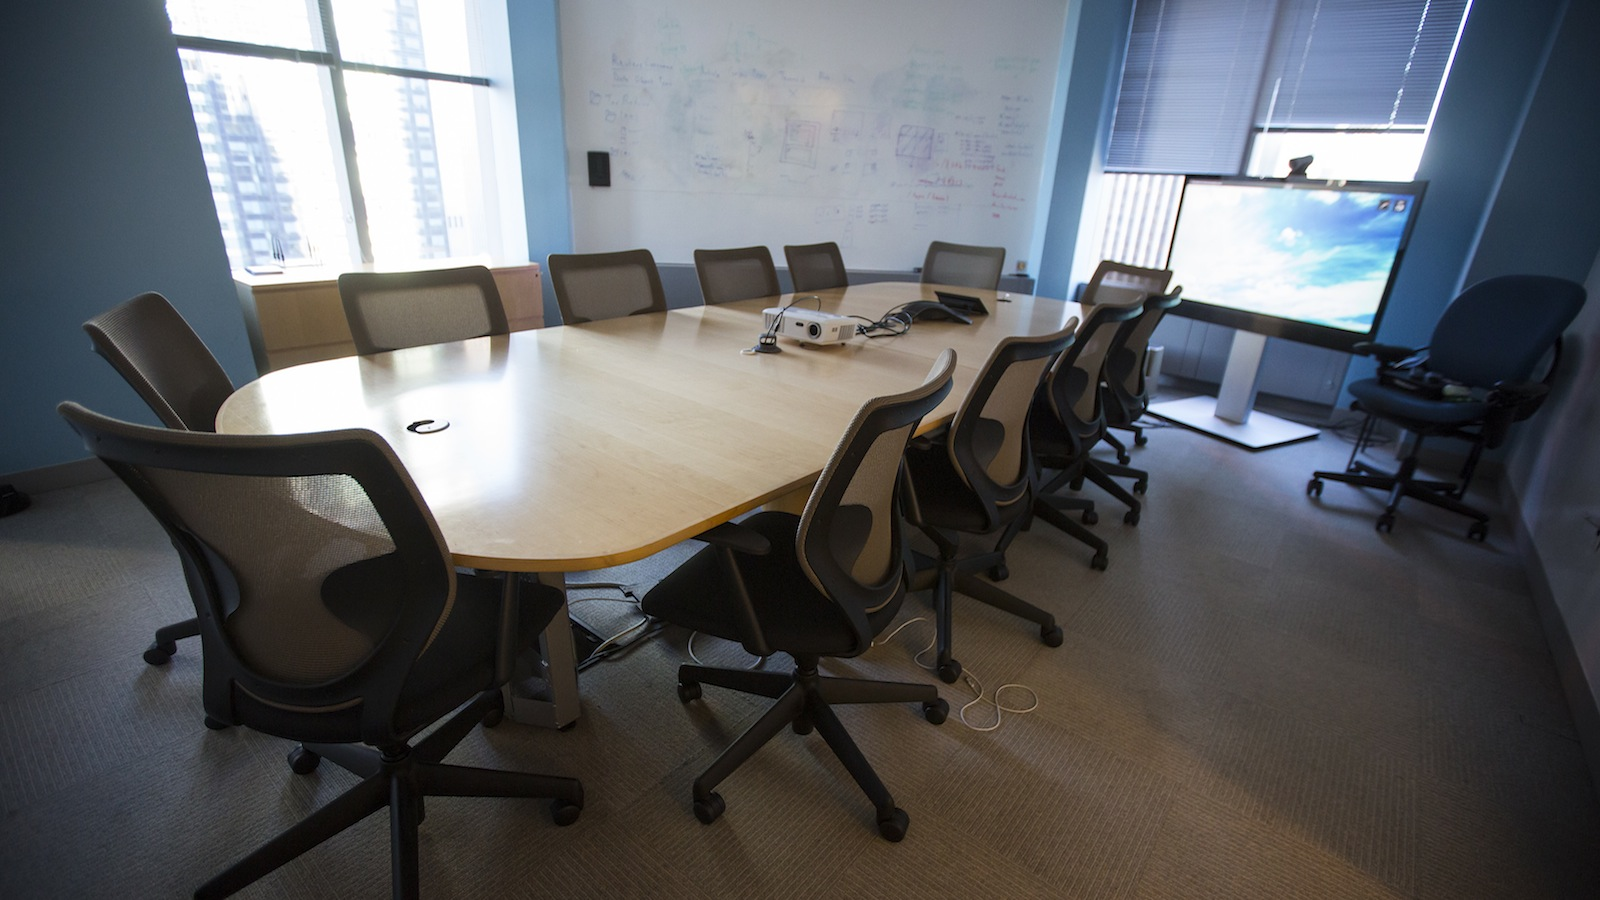 A conference room in the offices of Thomson Reuters in New York, December 13, 2013. REUTERS/Eric Thayer